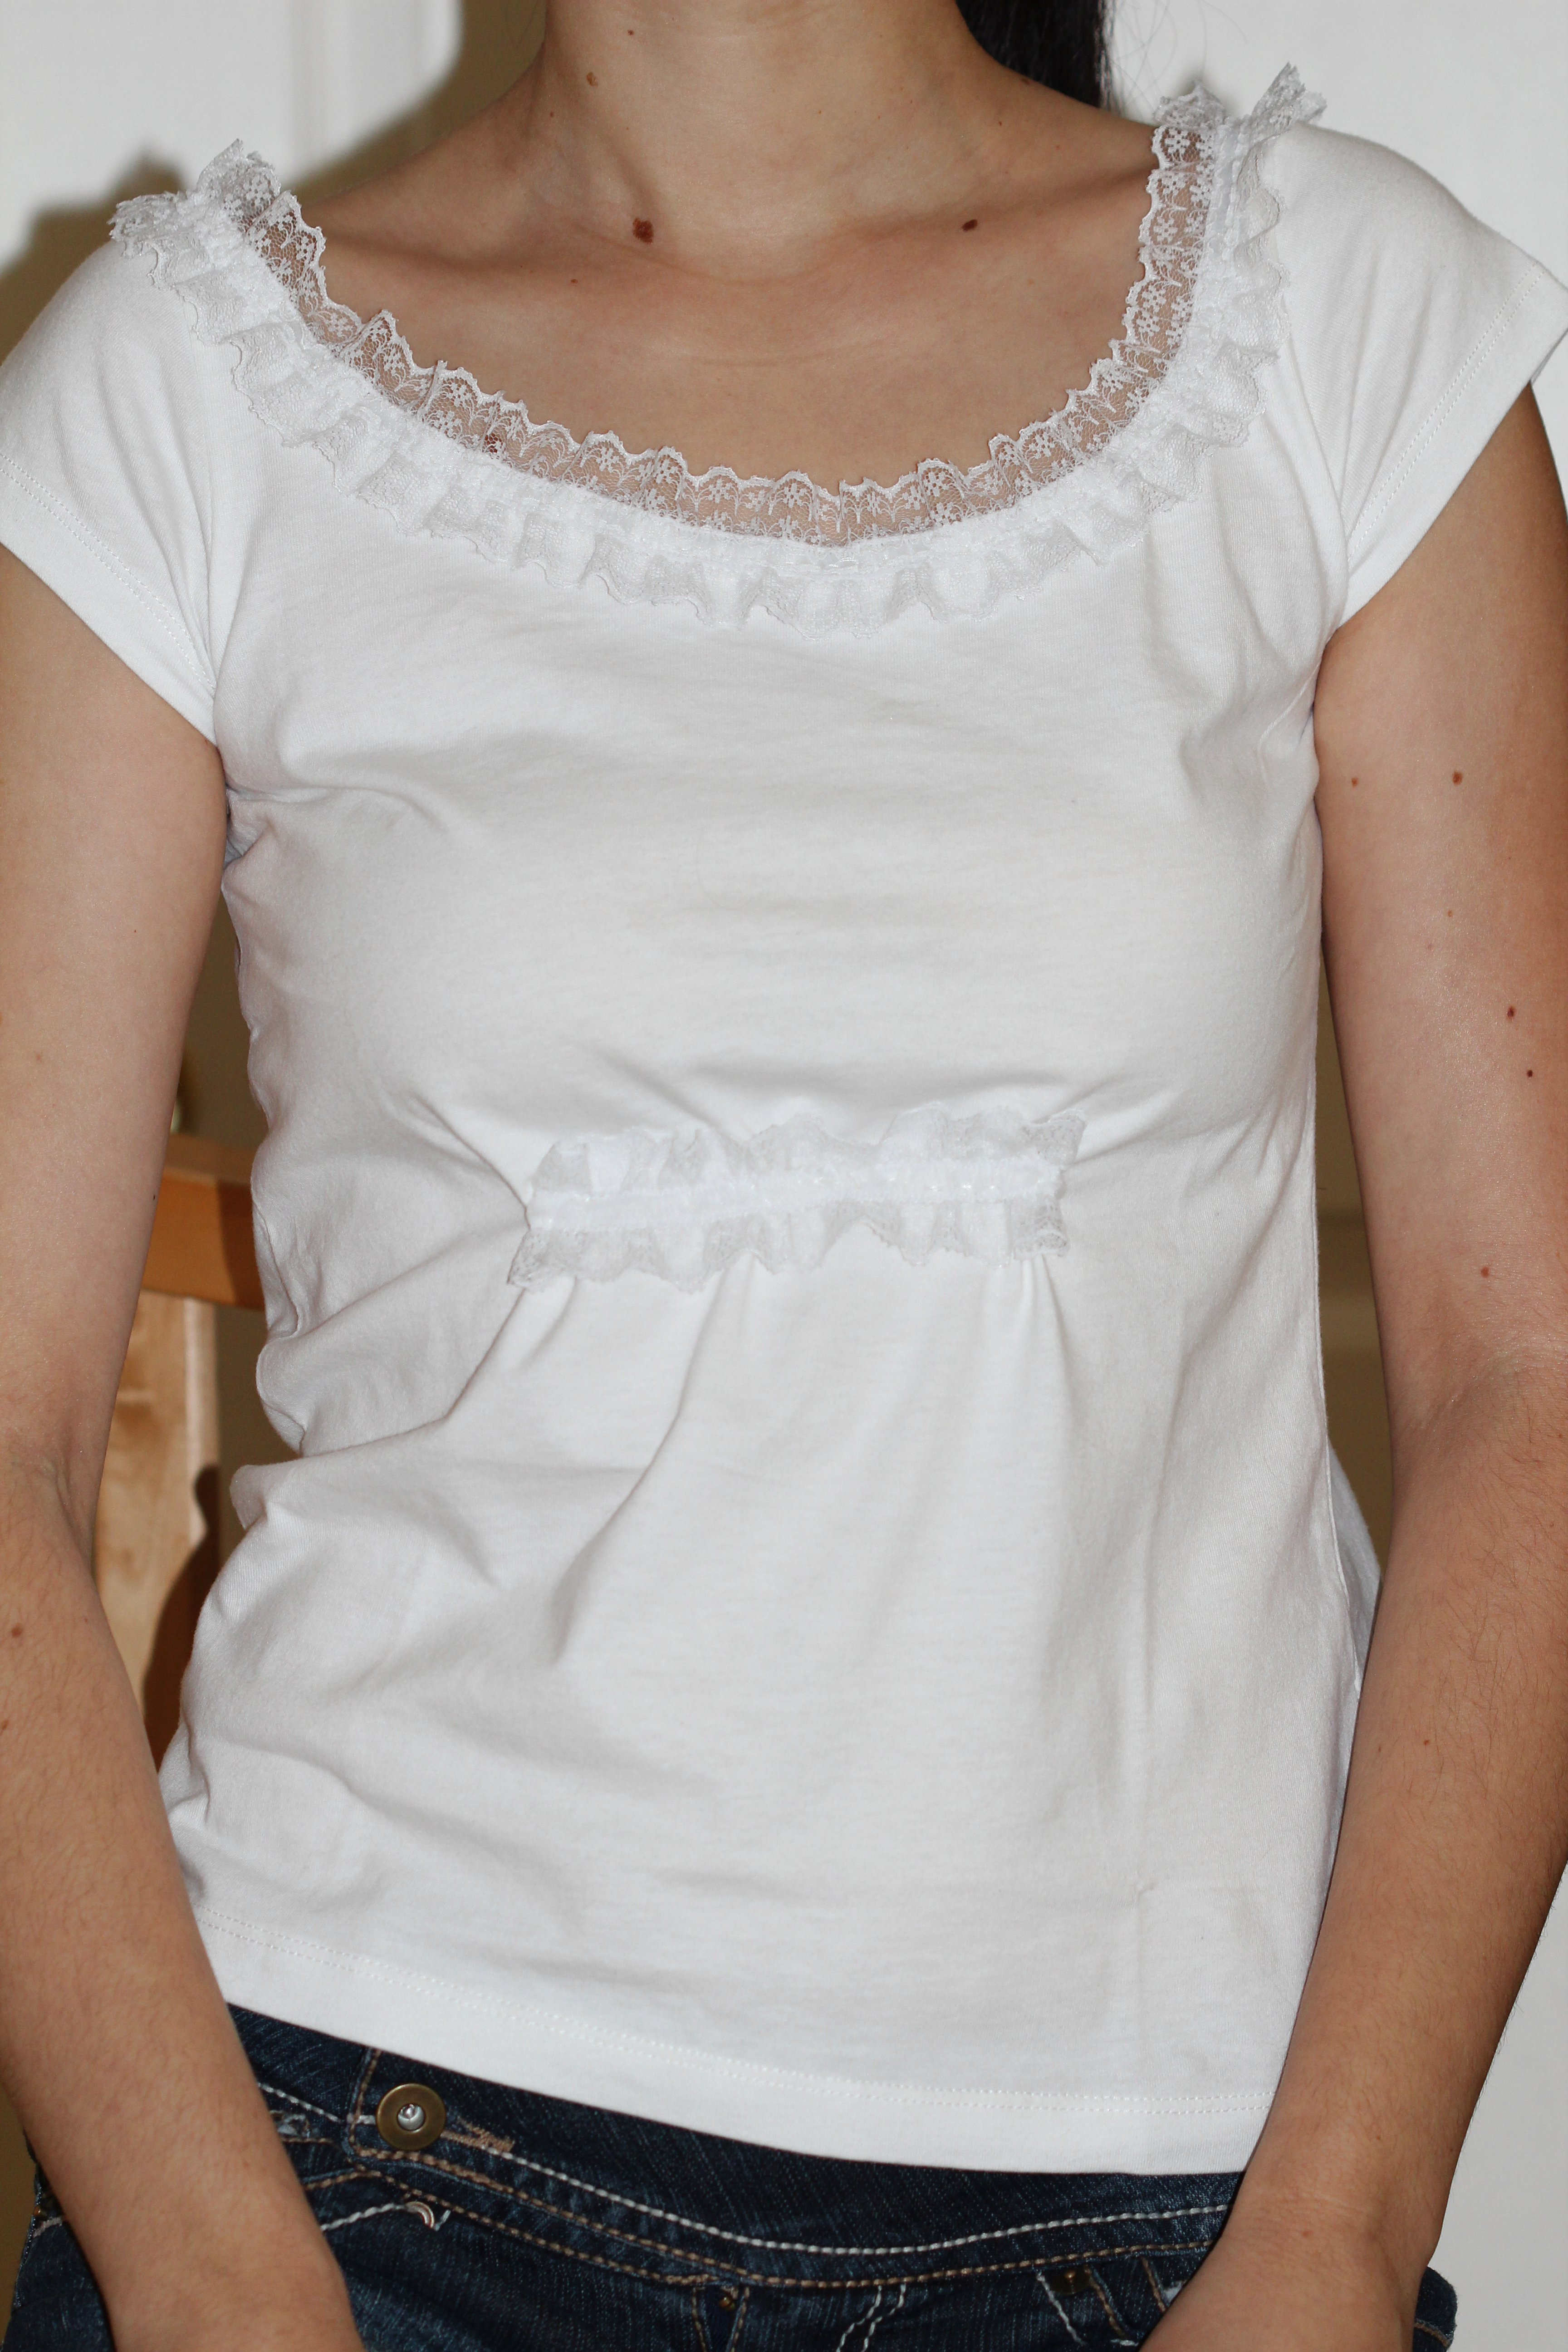 White t shirt diy creative side of me for How to put a picture on a shirt diy